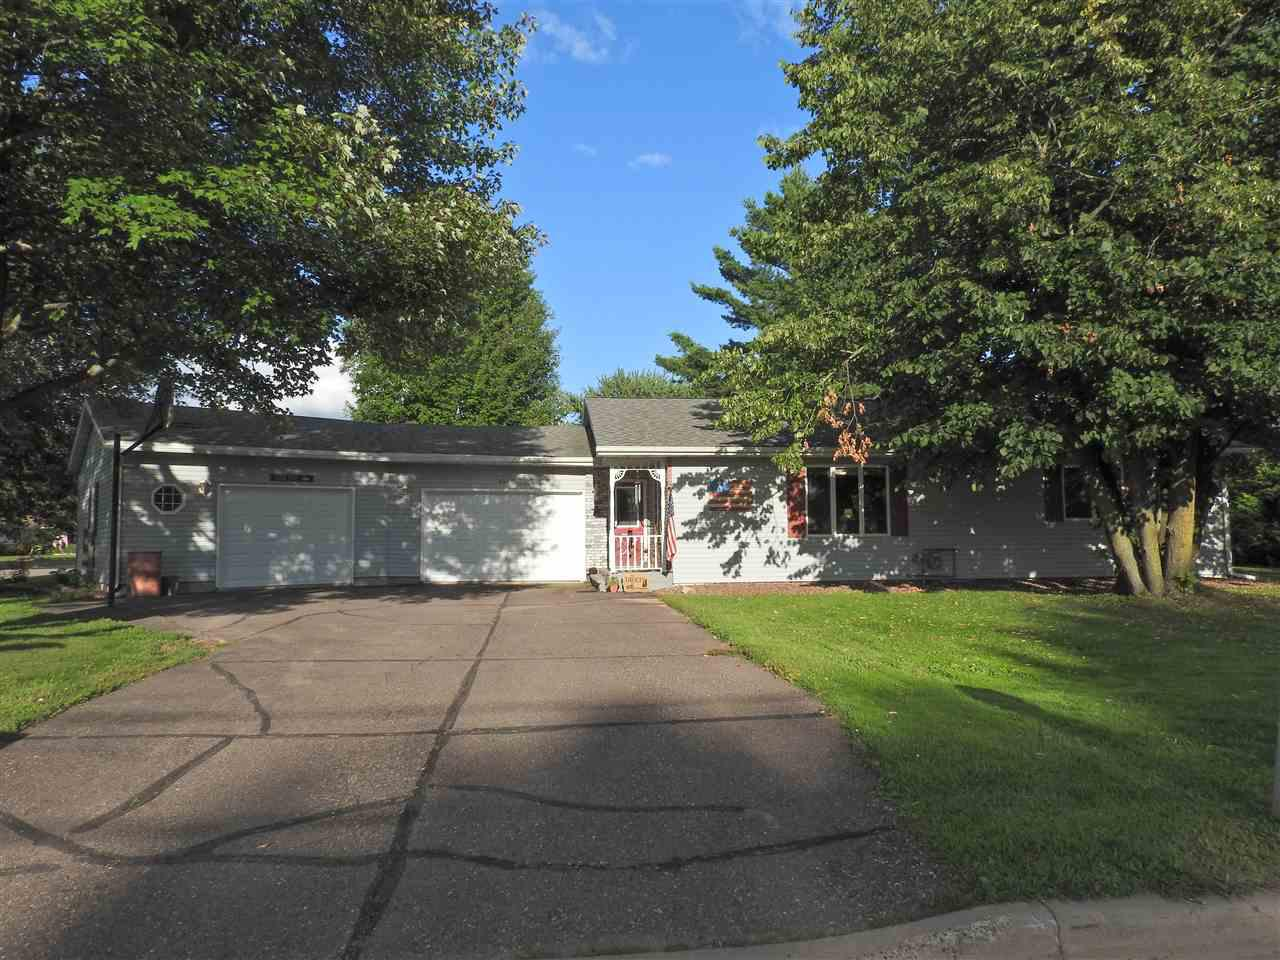 302 N 4TH AVENUE AVENUE, ABBOTSFORD, WI 54405